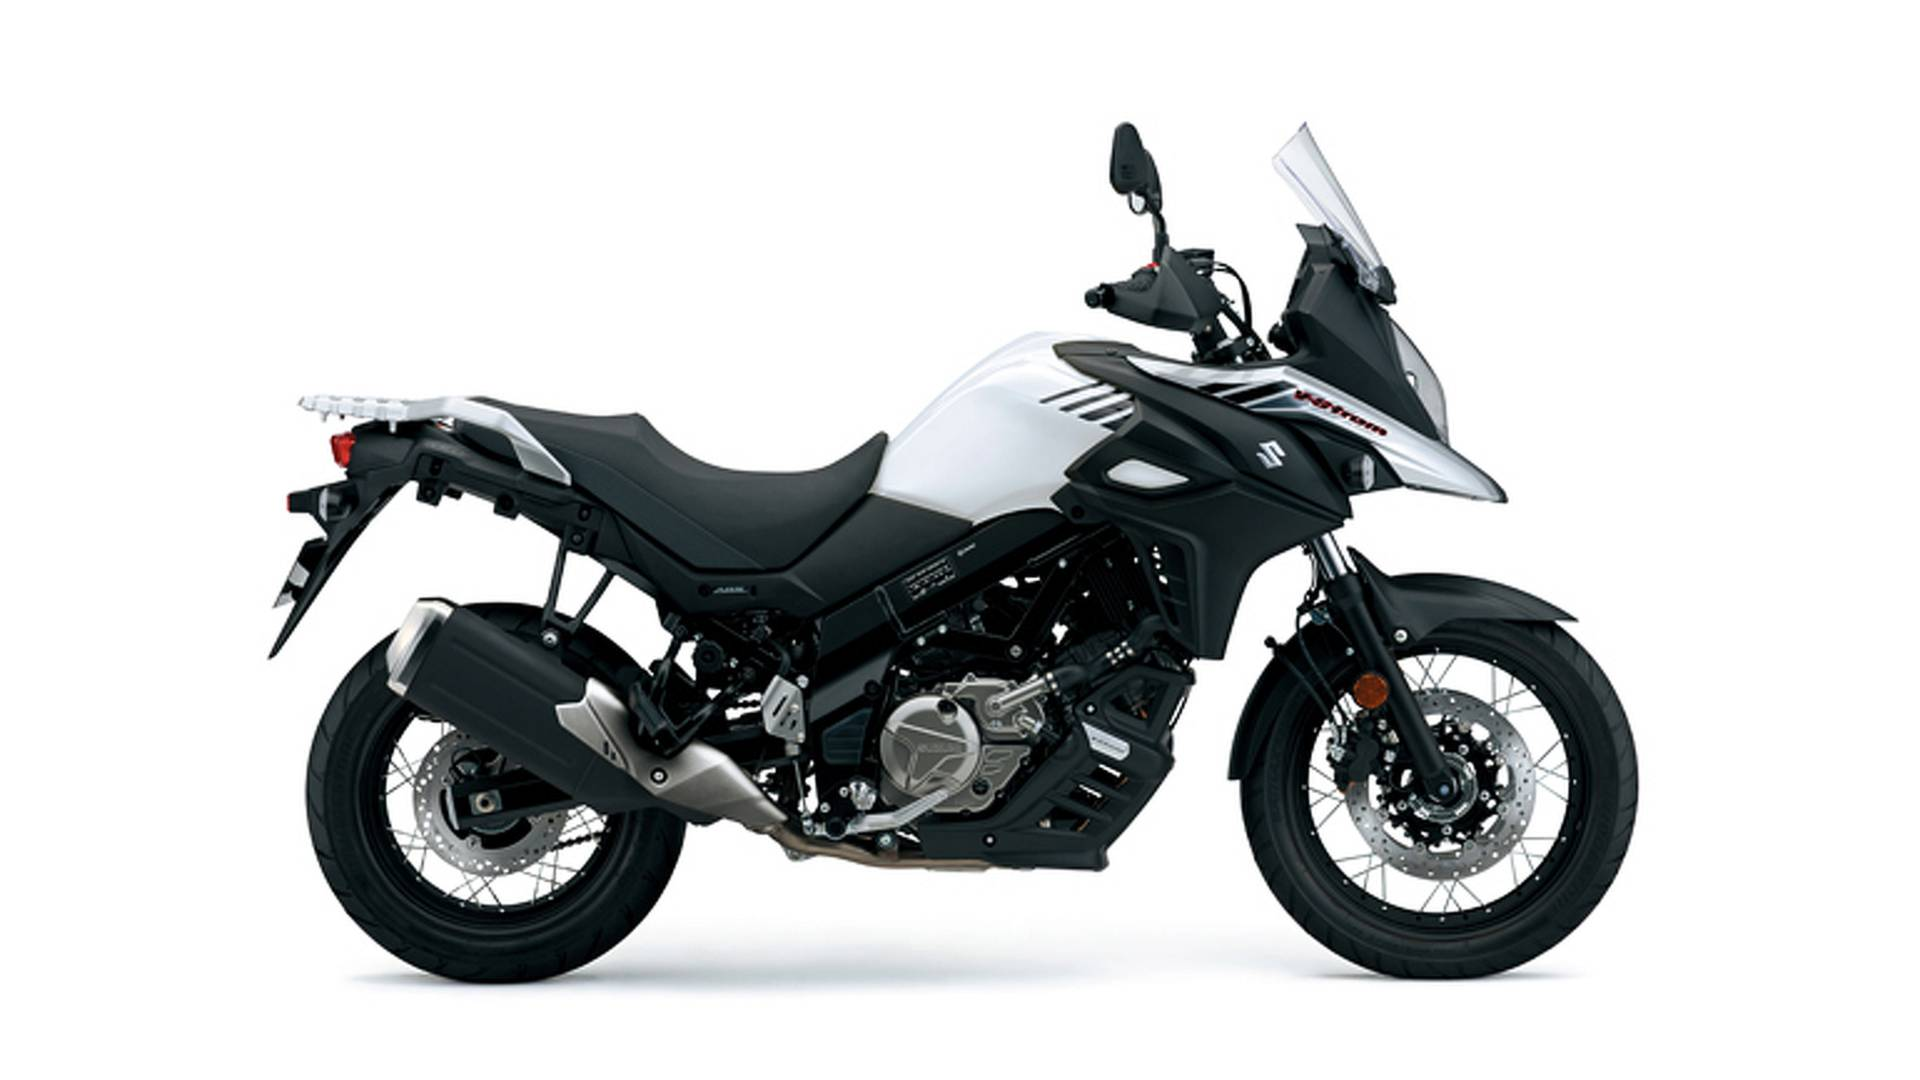 Best Touring Motorcycle 2019 The 5 Best Touring Motorcycles